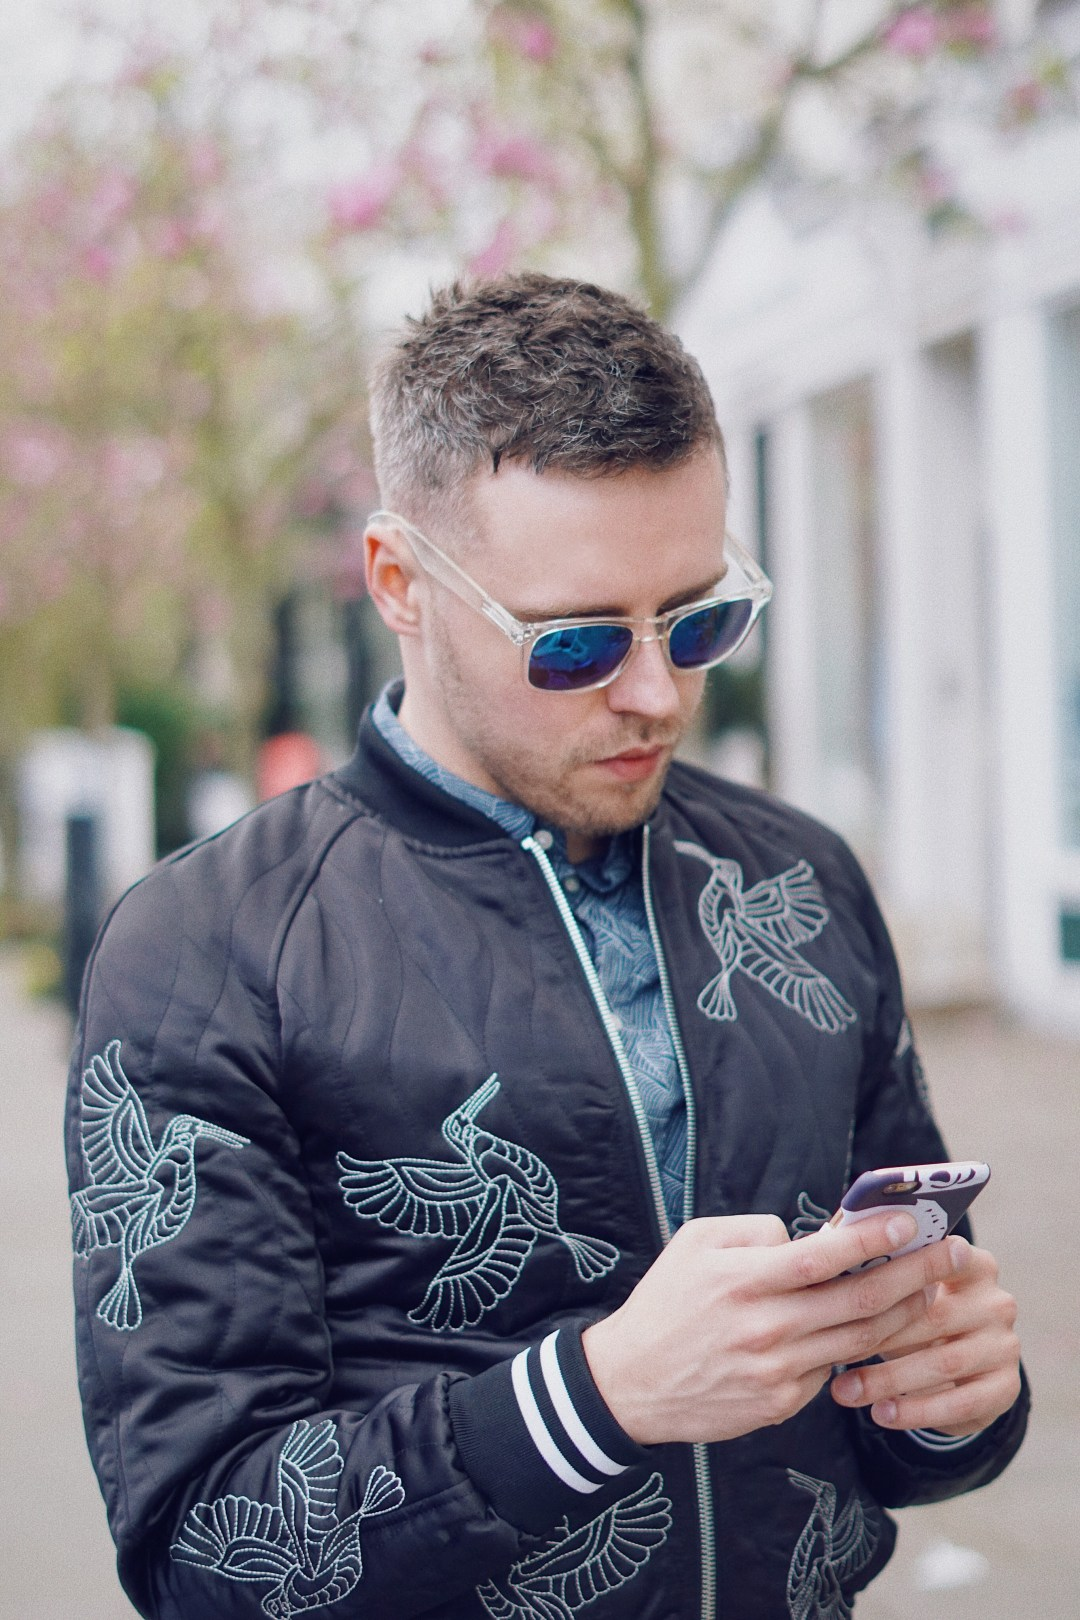 Hummingbirds in April. Wearing Bomber-style jacket with embroidered hummingbird detail from Zara and Shirt from H&M. Snapped in Notting Hill / Mr. Salt and Pepper blog by Skirmantas Petraitis